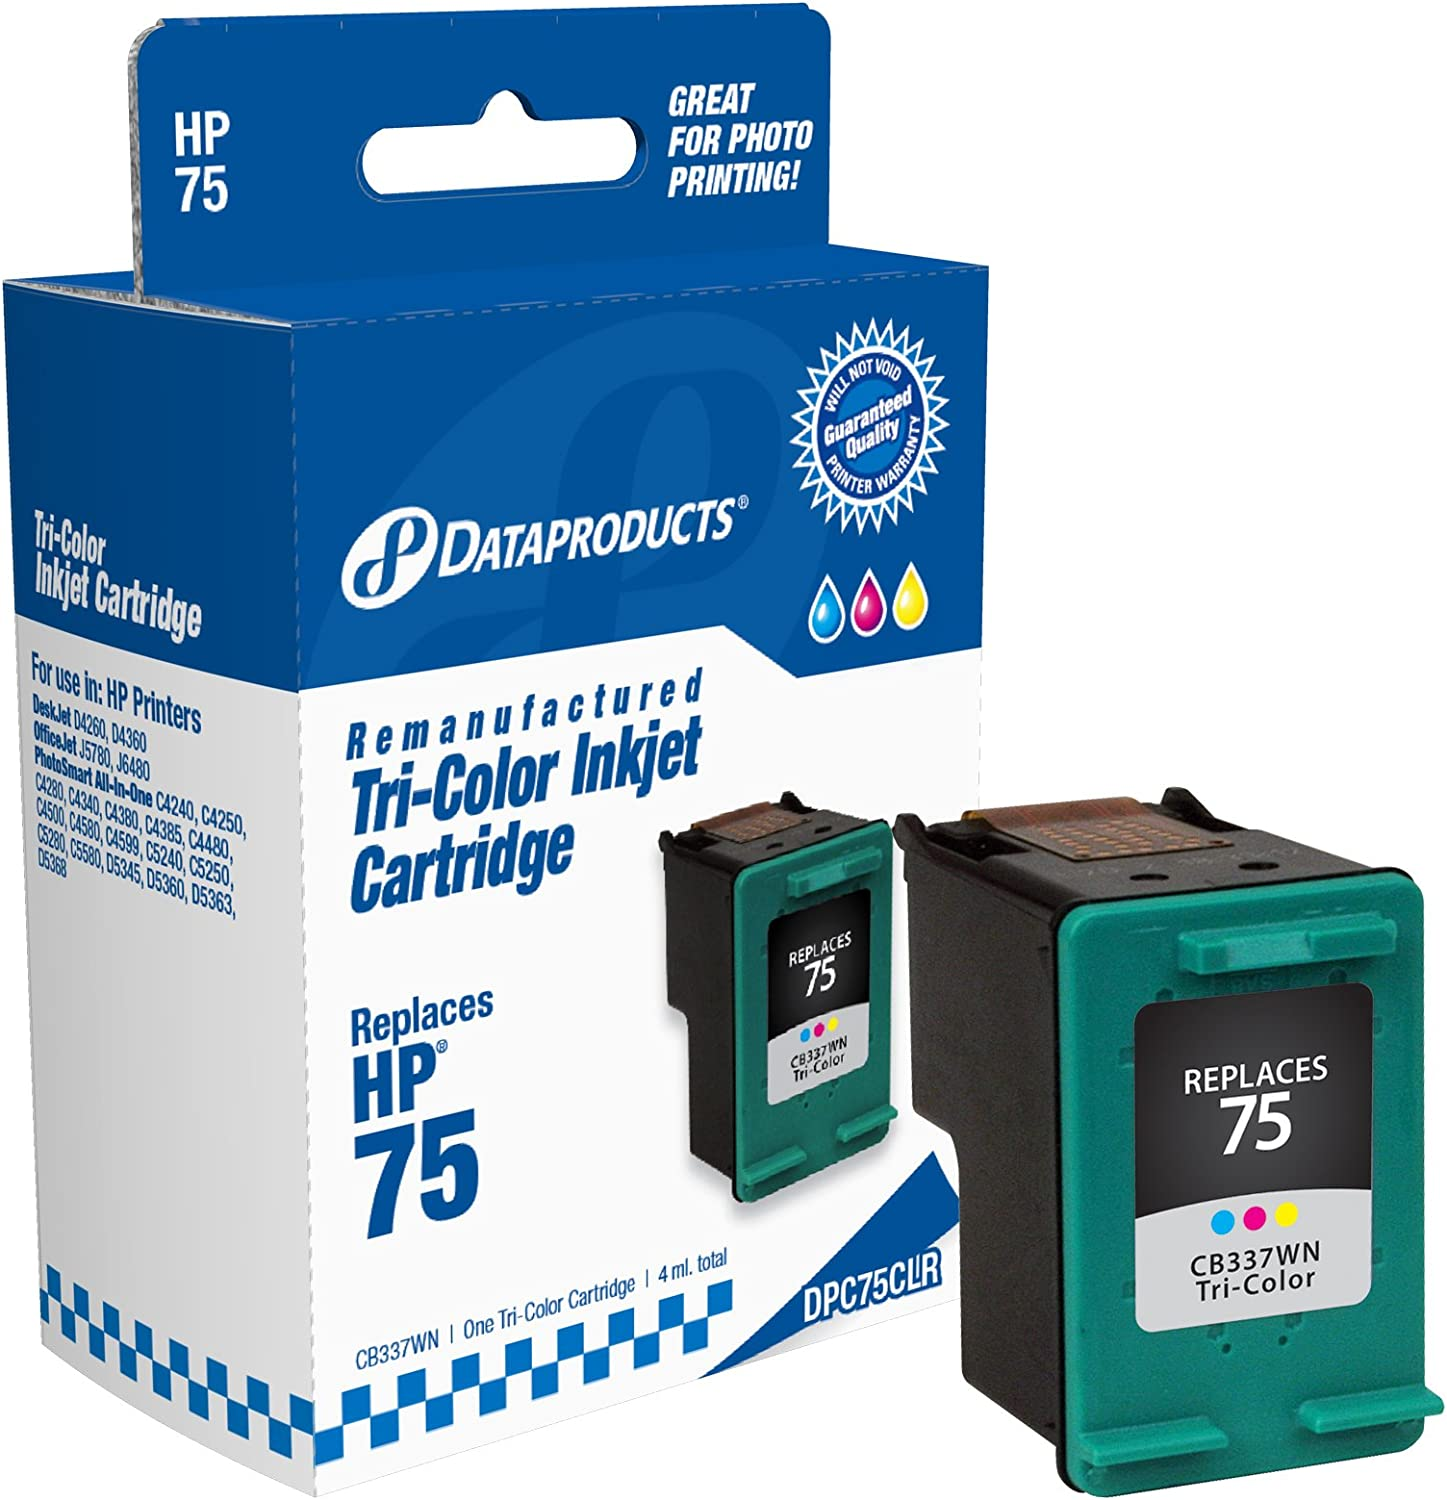 Dataproducts DPC75CLR Remanufactured Ink Cartridge Replacement for HP #75 (CB337WN) (Tri-Color)